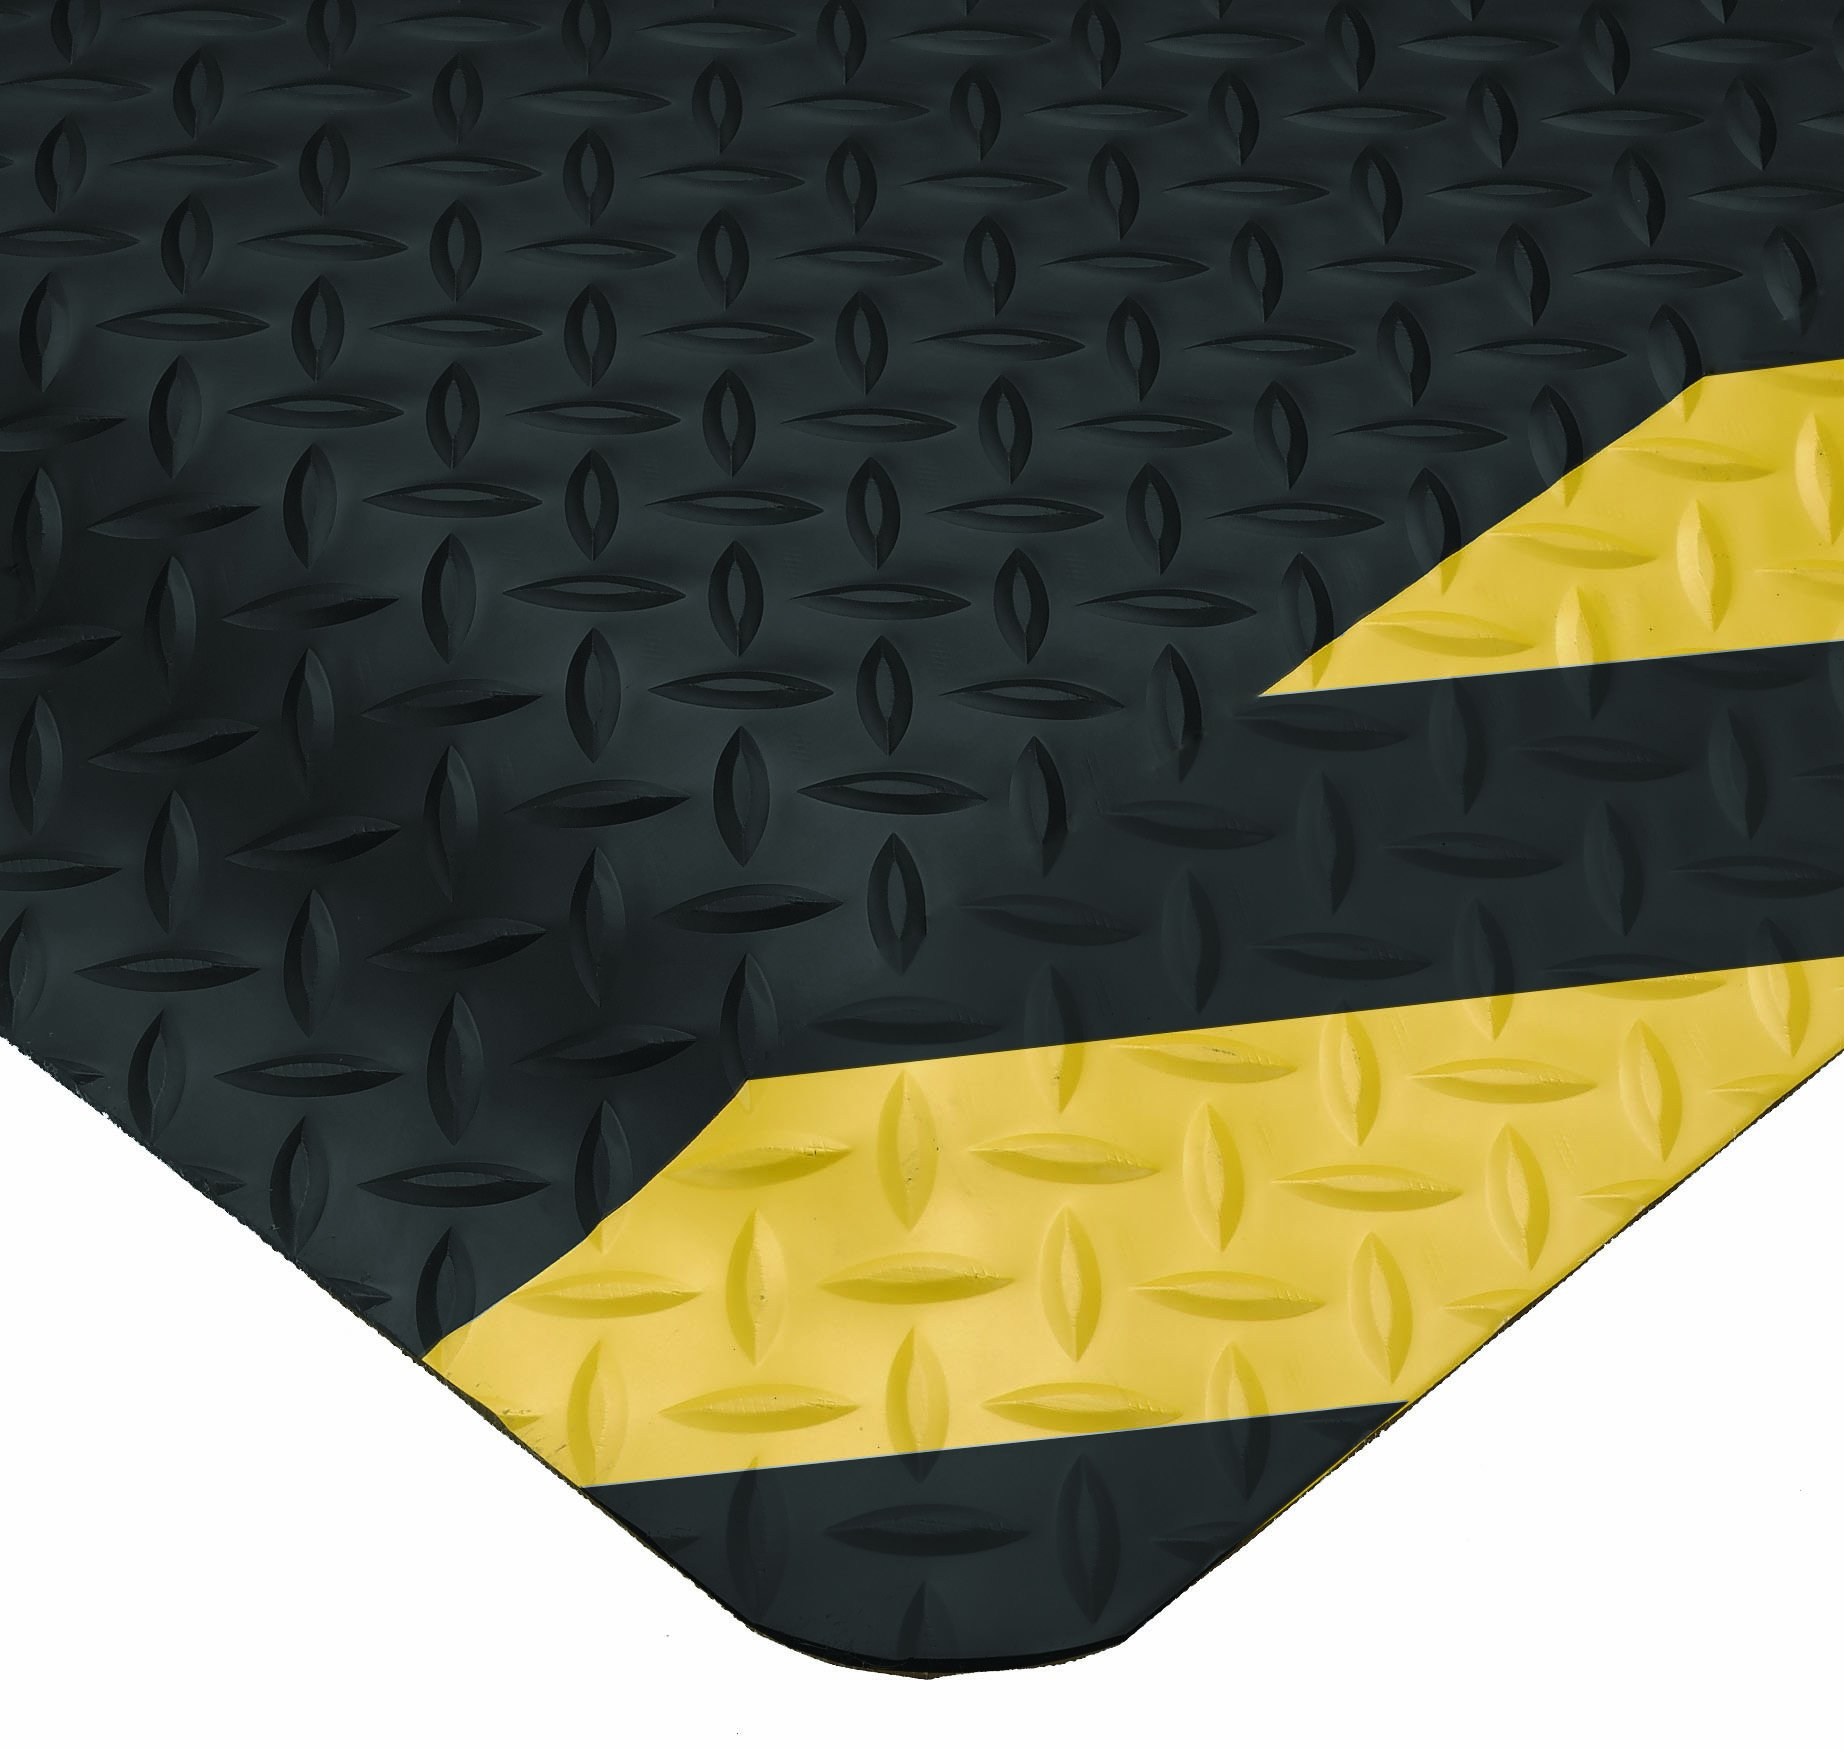 Wearwell 414.1516x2x3CHV Diamond-Plate SpongeCote Ultrasoft Mat, 2' Width x 3' Length x 15/16'''' Thickness, Black/Chevron